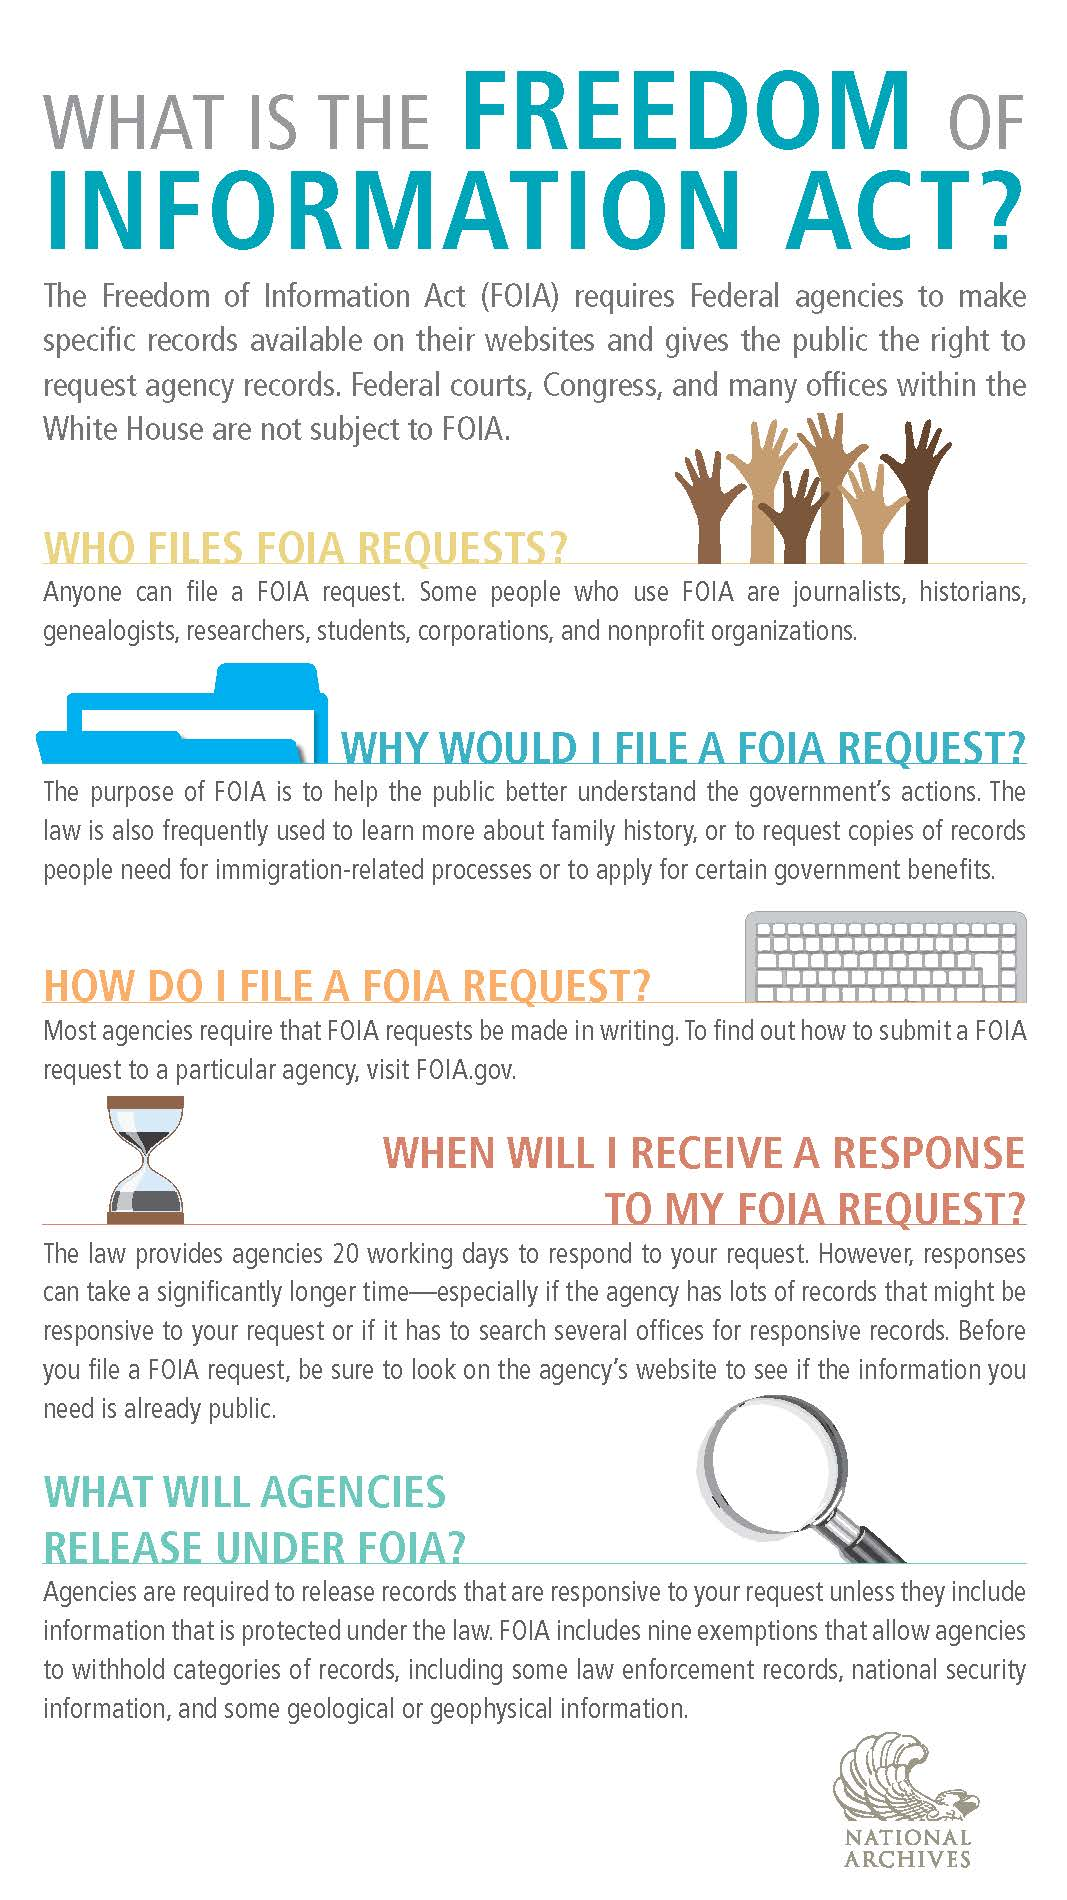 What is the difference between these FOIA requests?